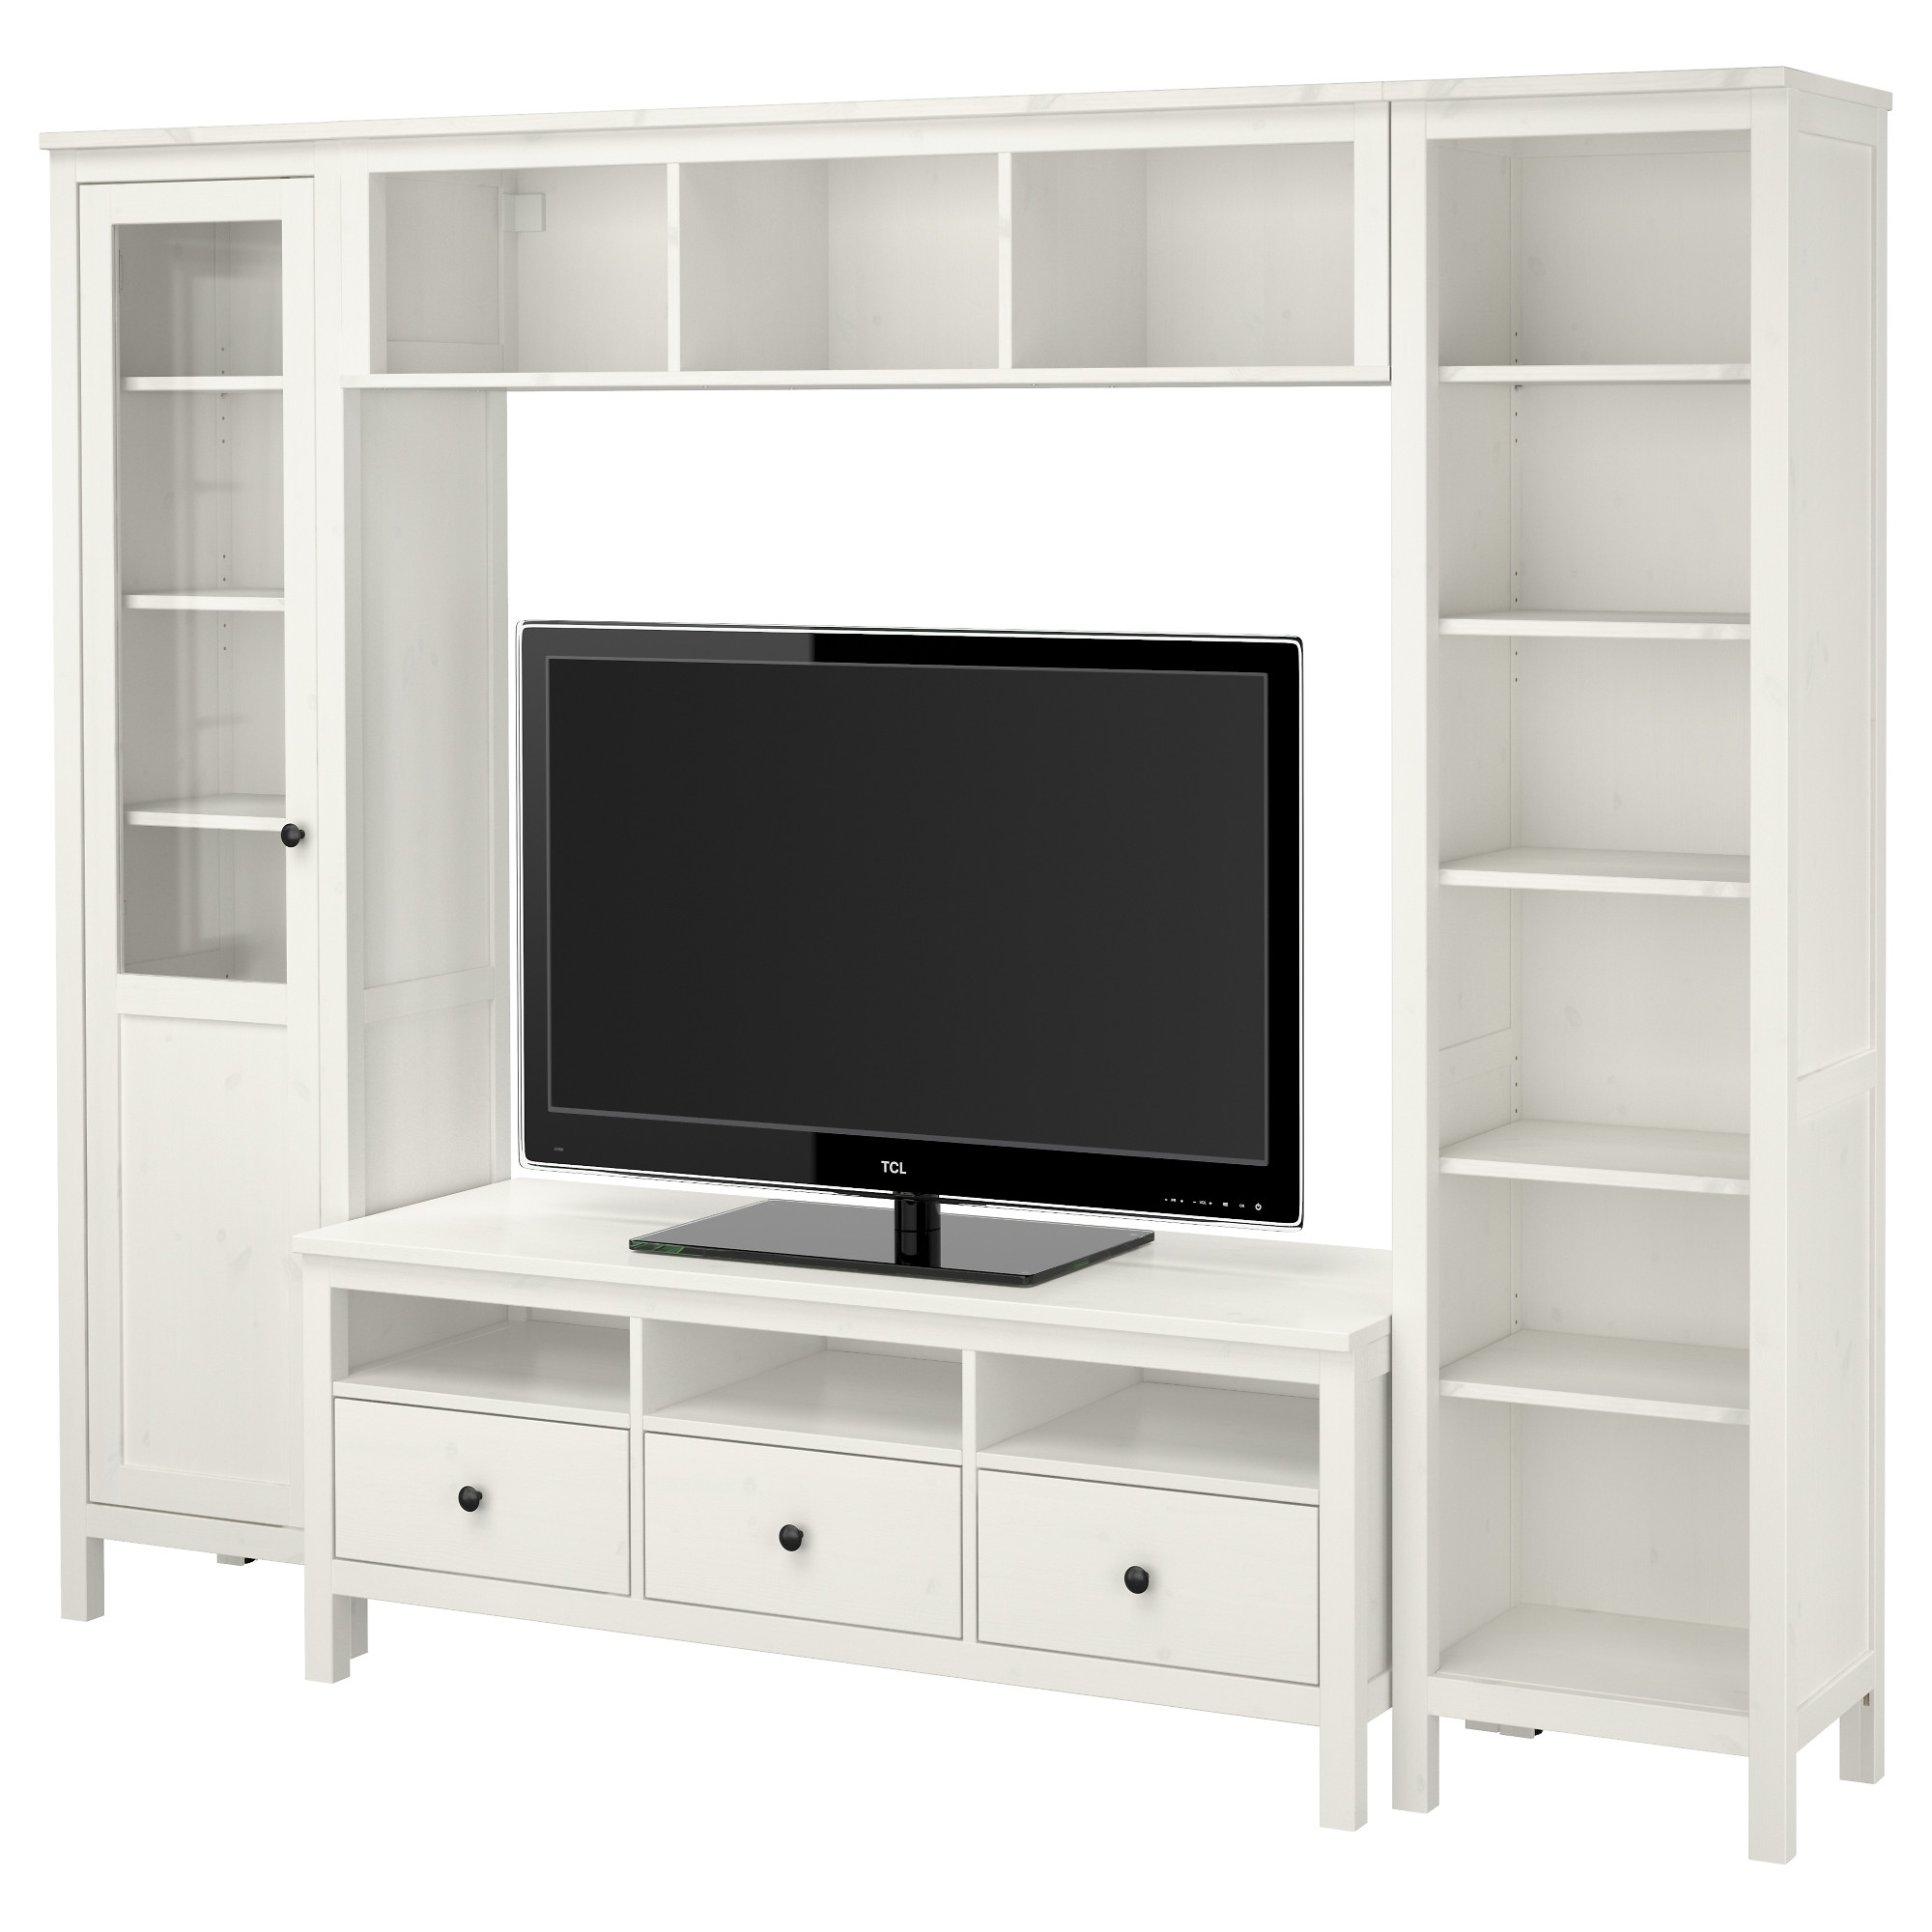 Meuble Tv Escamotable Ikea